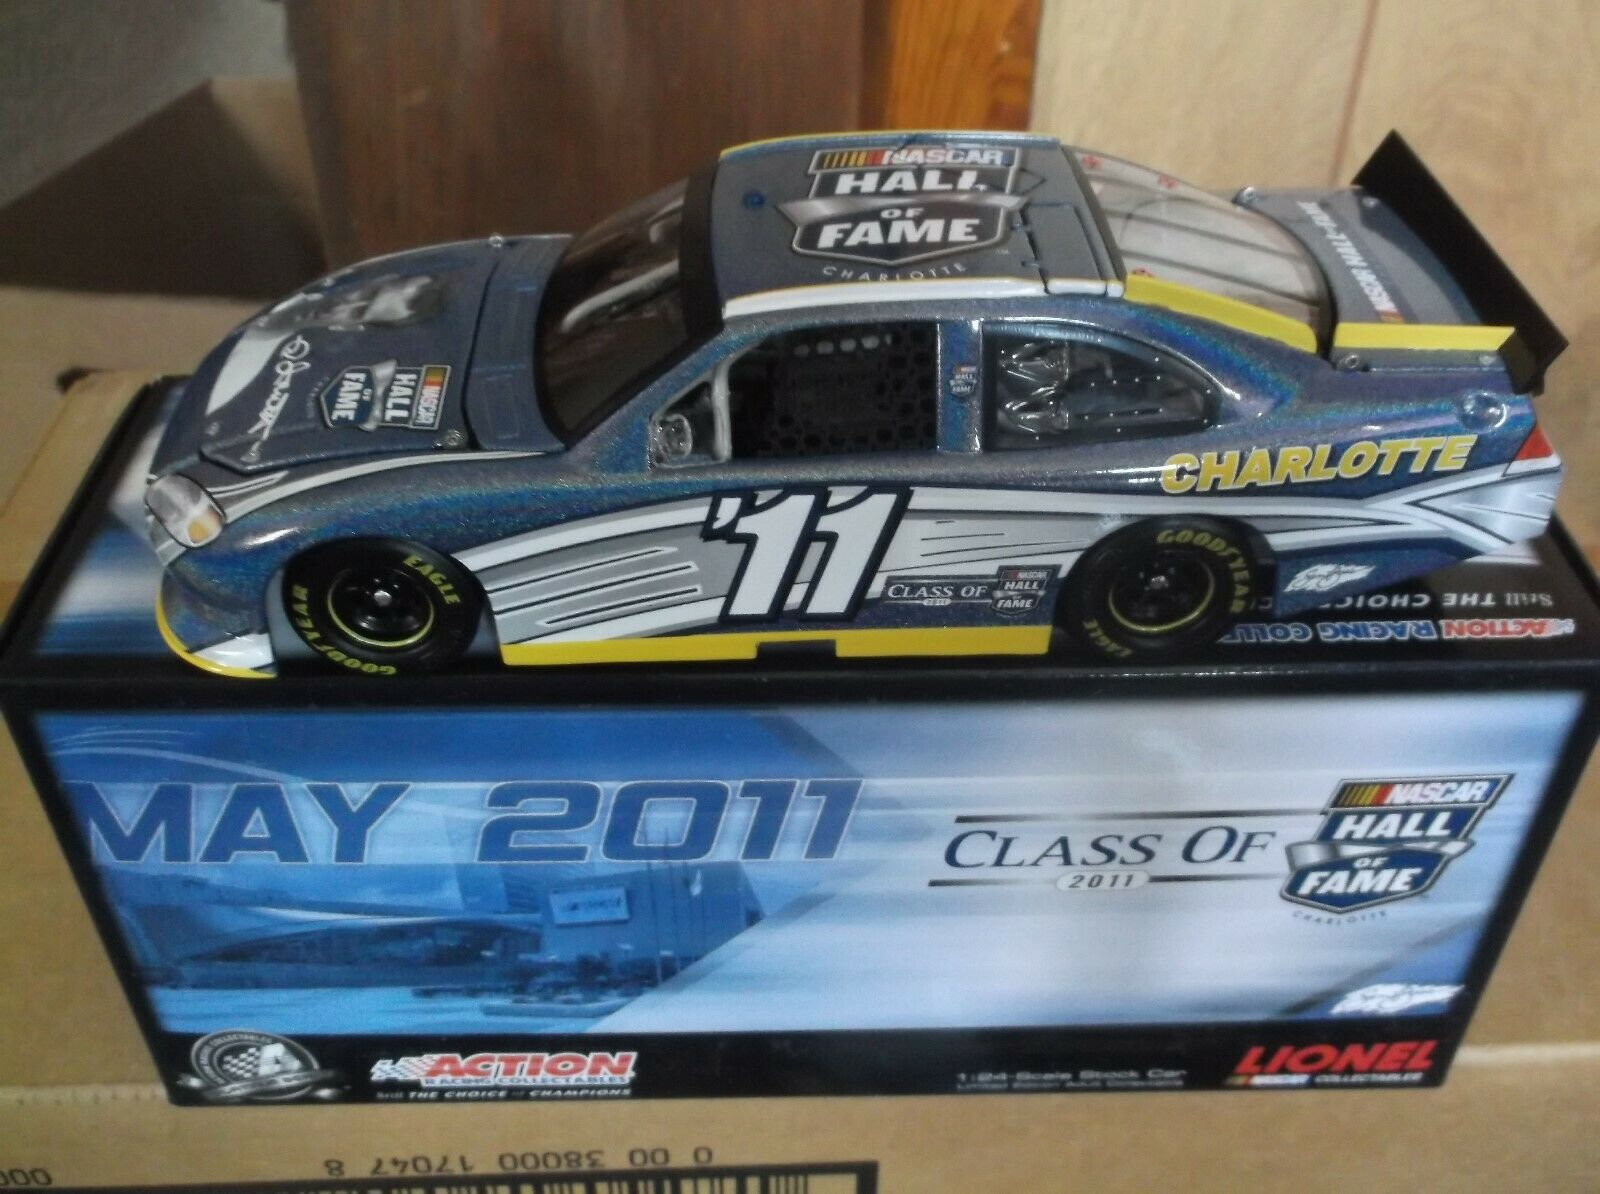 RARE 2011 Ned Jarrett Hall of Fame flashcoat Couleur 1 24TH Scale Diecast